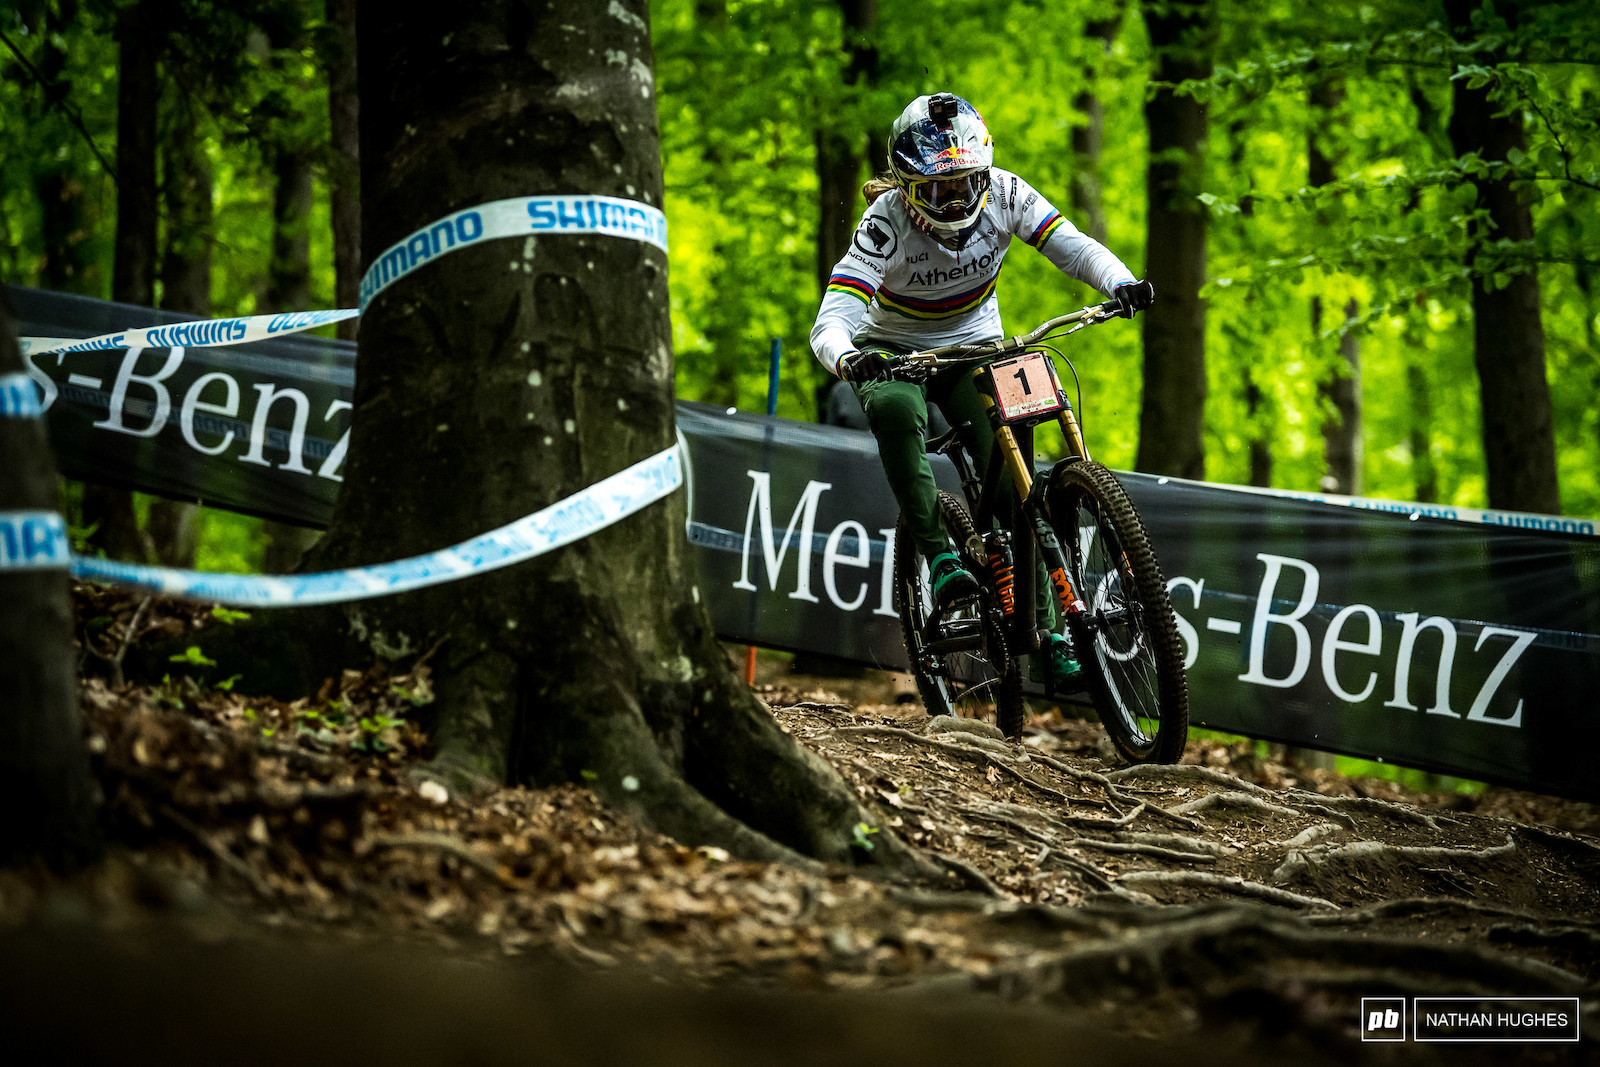 How hard did Rachel Atherton push Certainly not as hard as she always does on Sundays...